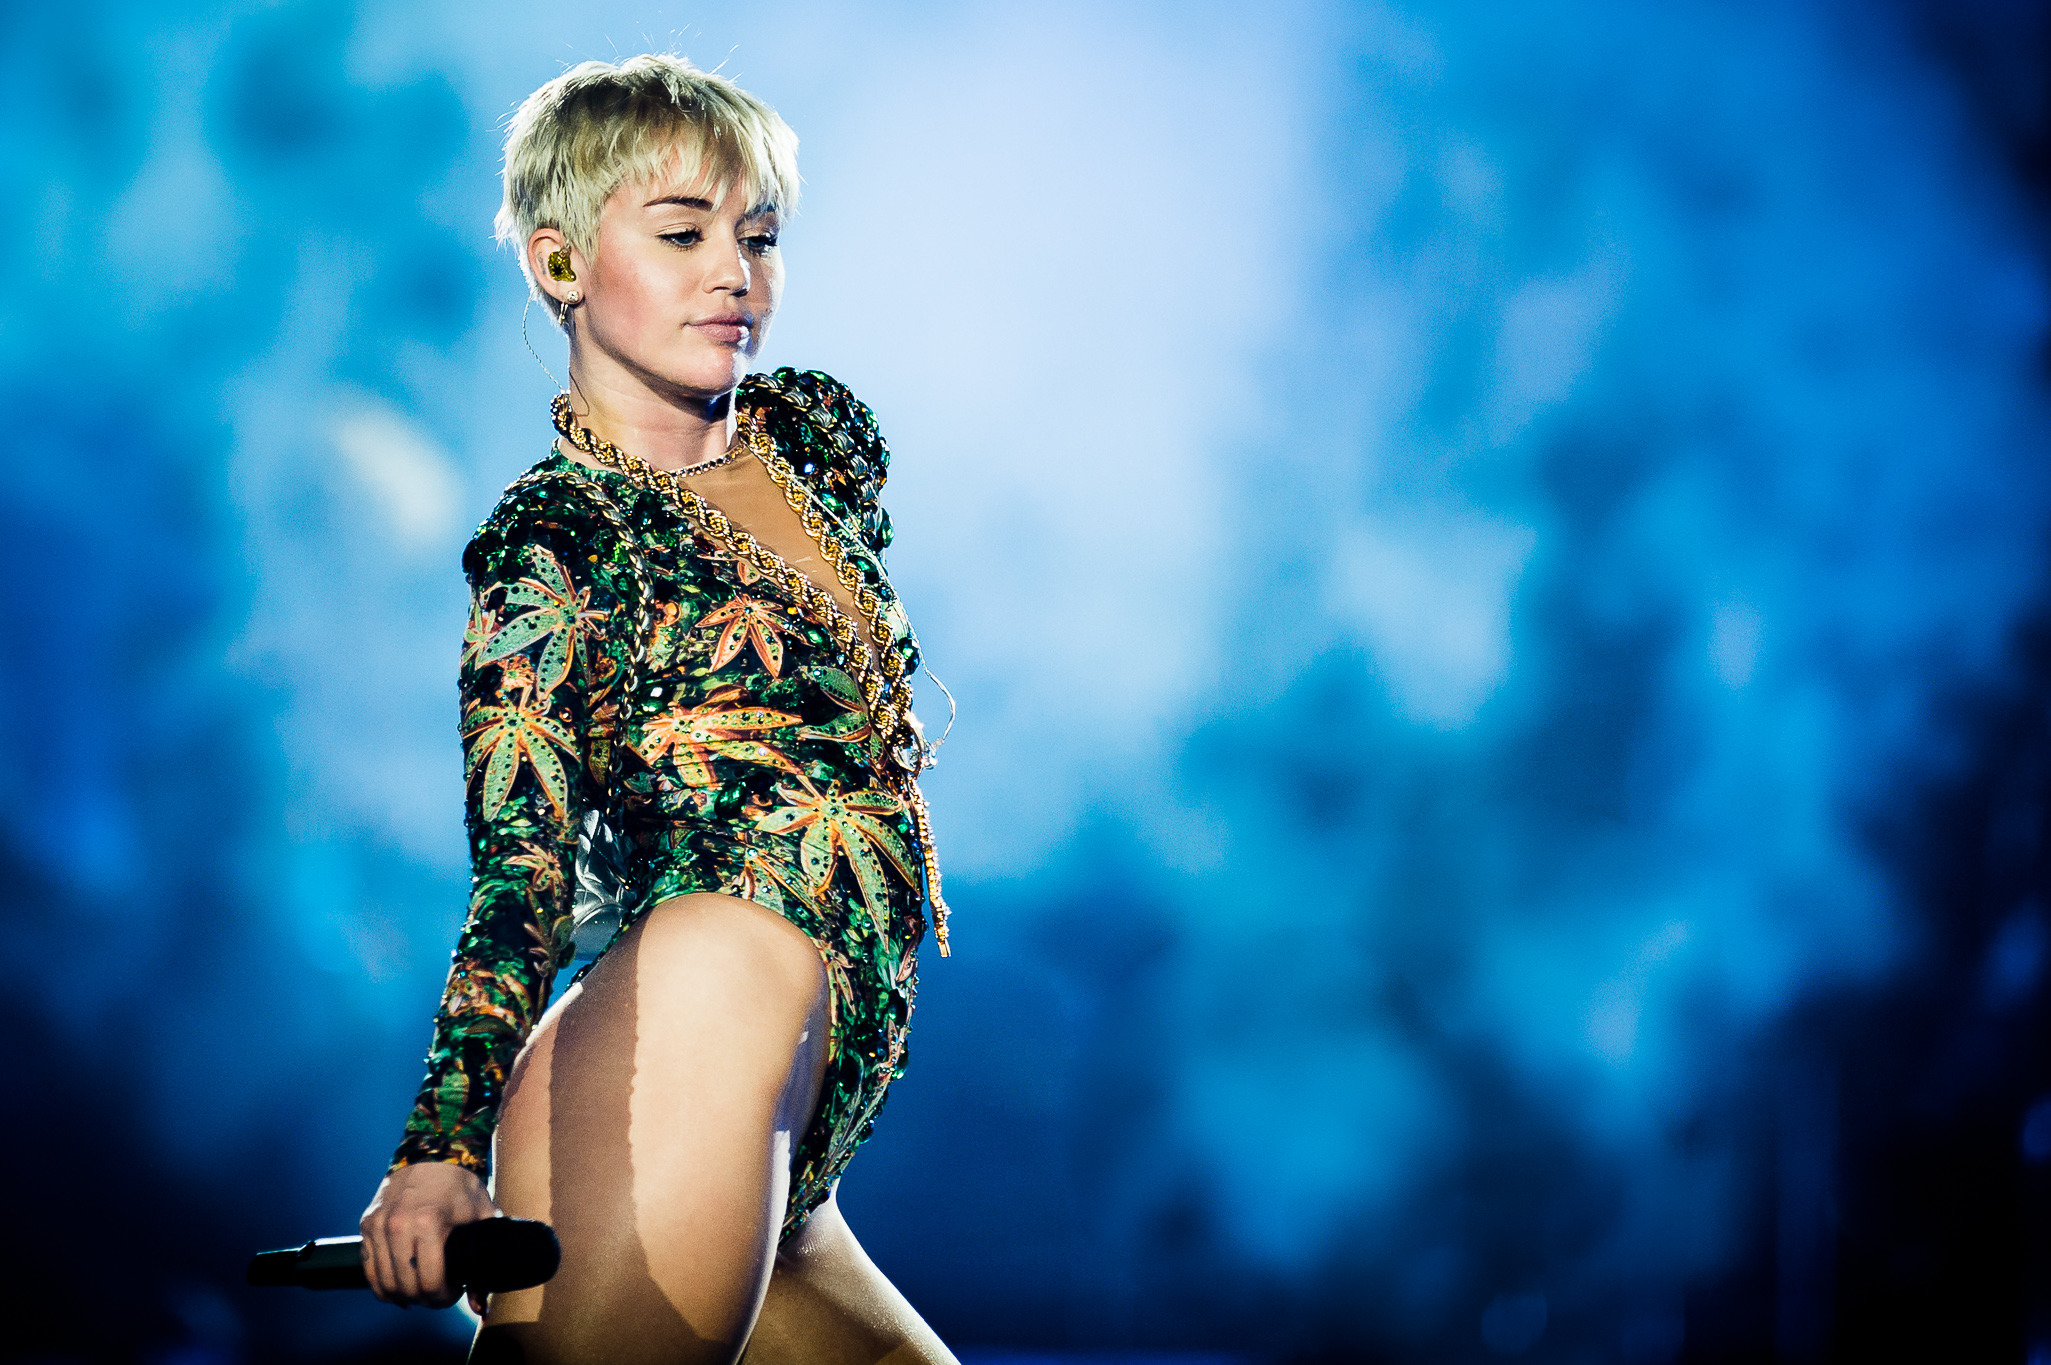 Miley Cyrus brings her Bangerz tour to Allstate Arena with openers Icona Pop, March 7, 2014.